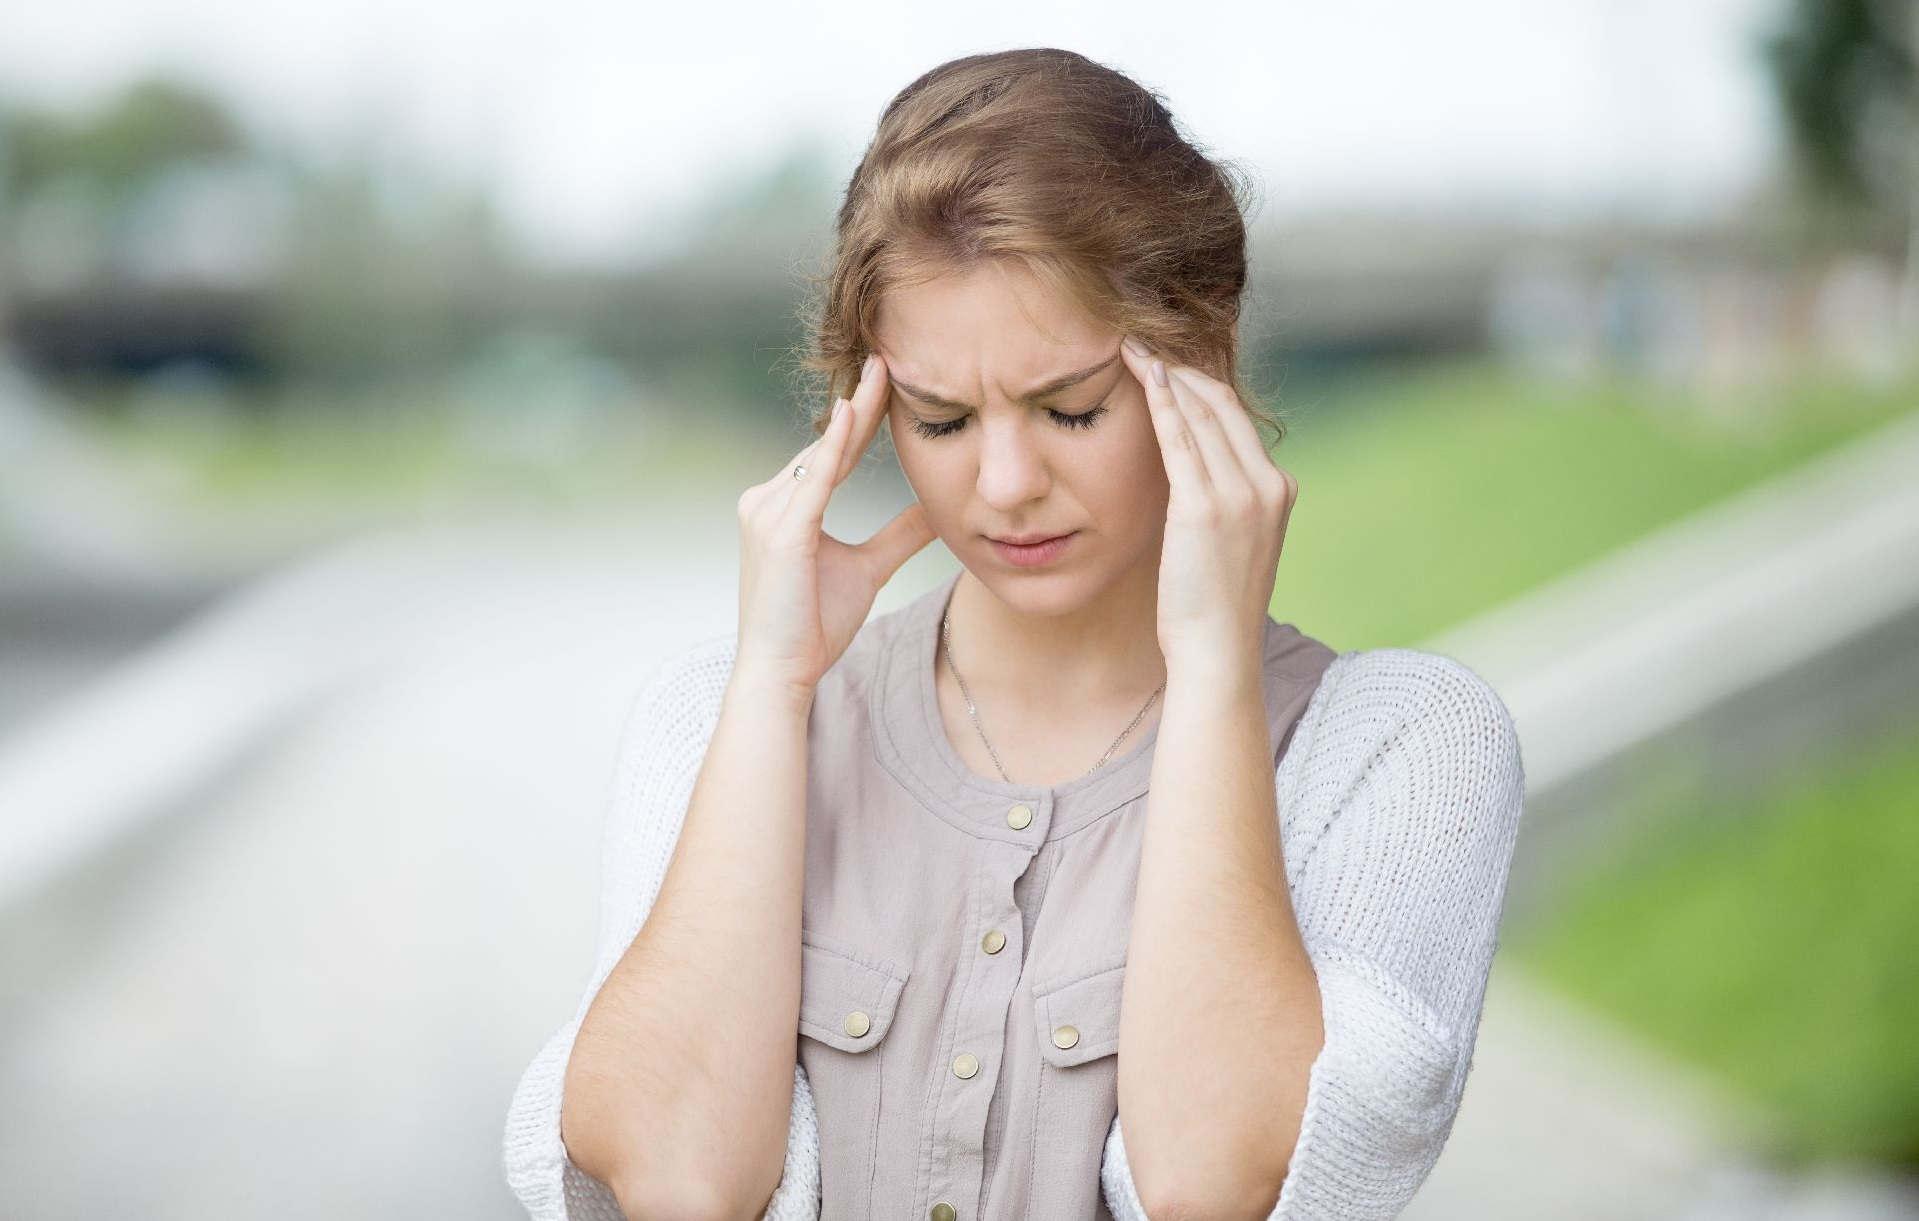 Portrait of stressed beautiful woman walking on the street and holding her head with hands trying to remember something or having headache. Attractive model suffering from pain outdoors in summer